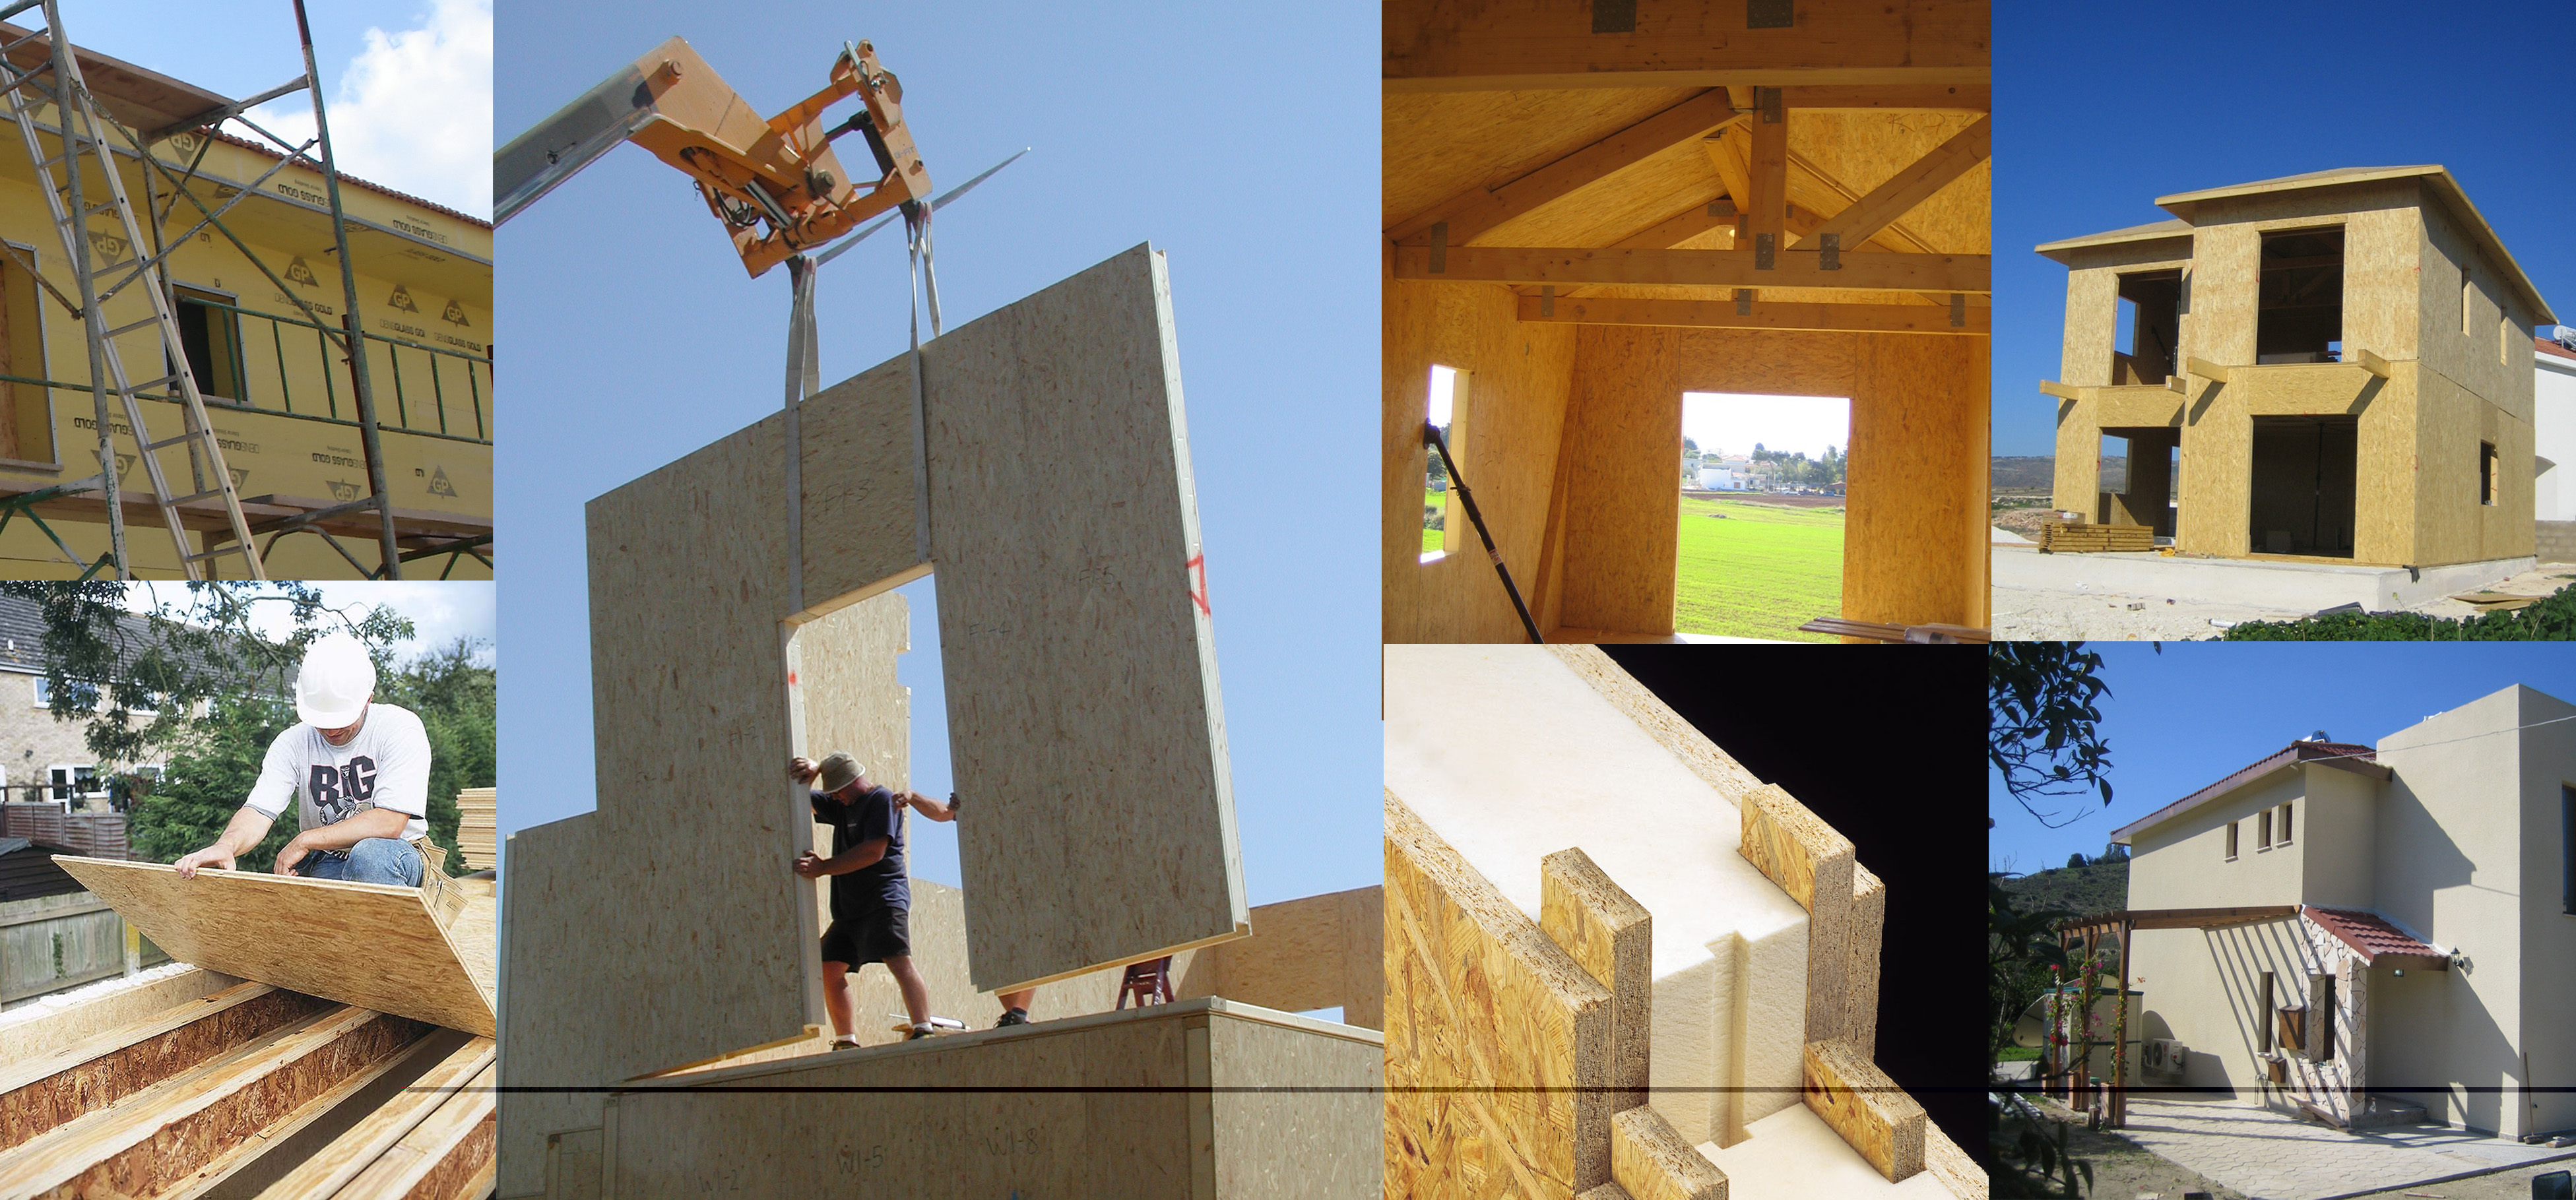 Collage of images showing large timber panels being constructed in a timber frame house.